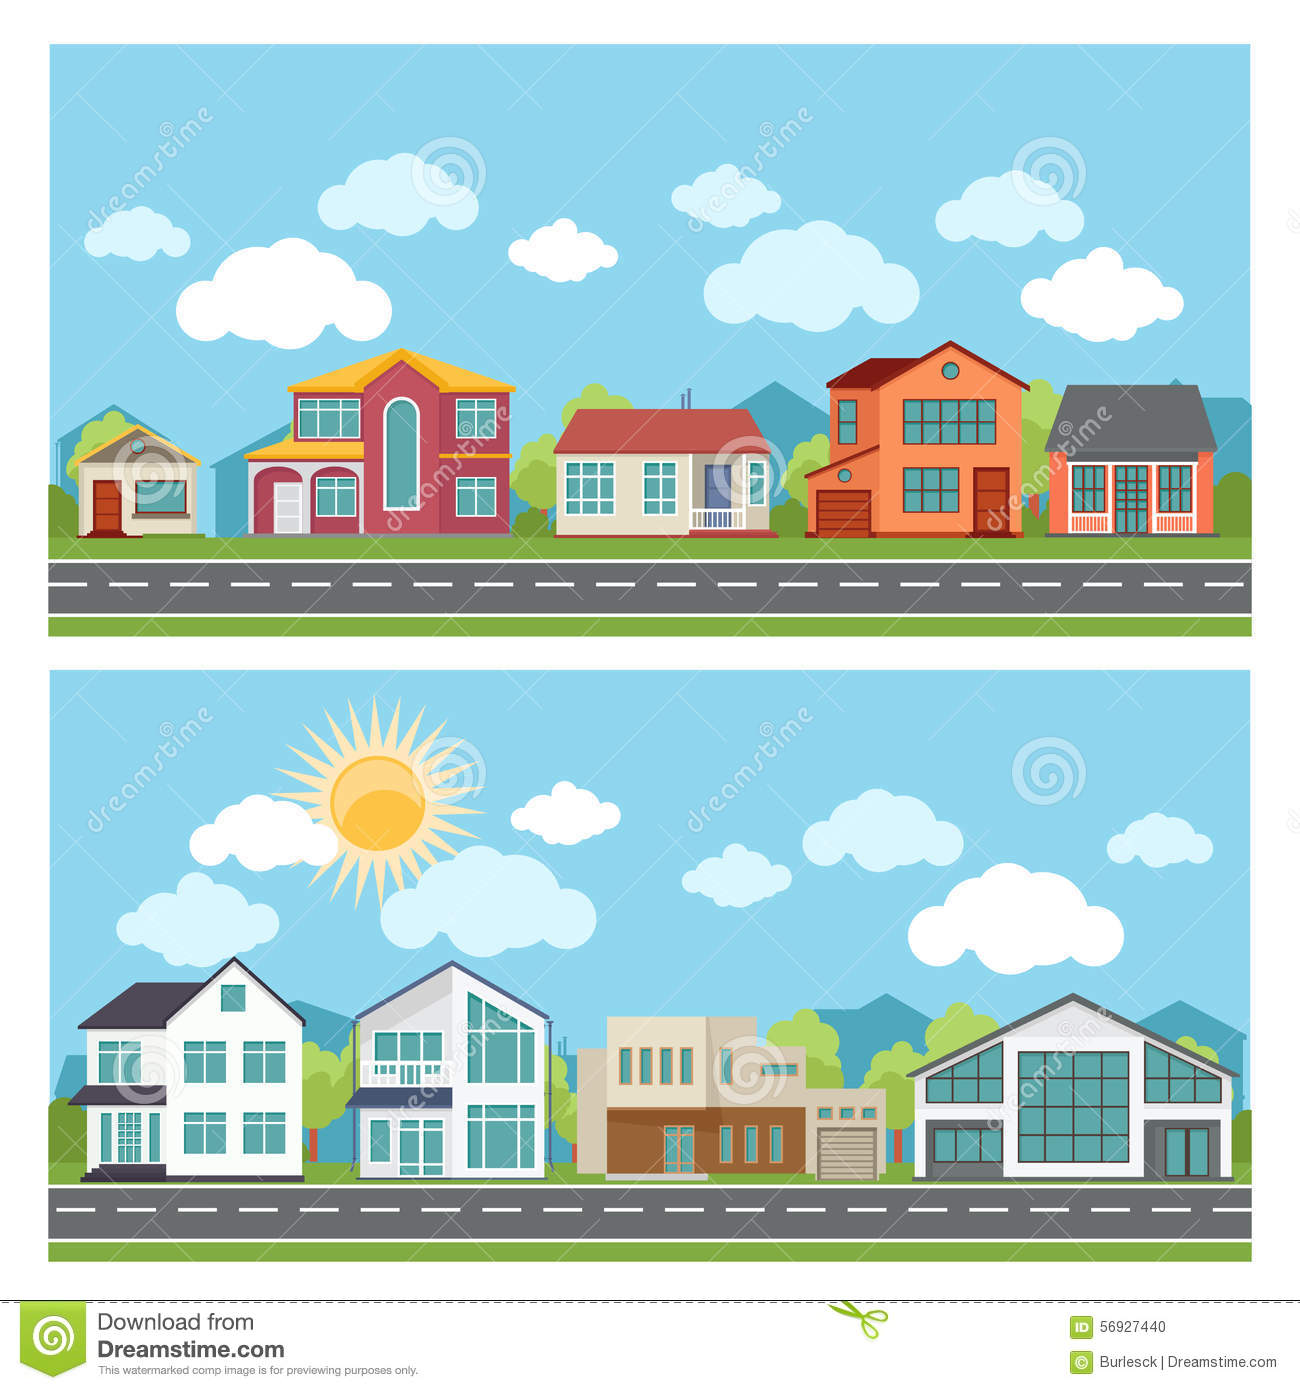 Vector Banners With Cottage Houses In Flat Design Stock Vector ... on 3 bed design, flat pool, flat flowers, flat furniture, flat lighting, 2 bedroom design, flat space, flat chair, roofing style roof design, flat wall, lodge design, flat painting, flat decor, flat art, flat storage, flat kitchen, bungalow design, apartment design, flat houses in trinidad, flat photography,